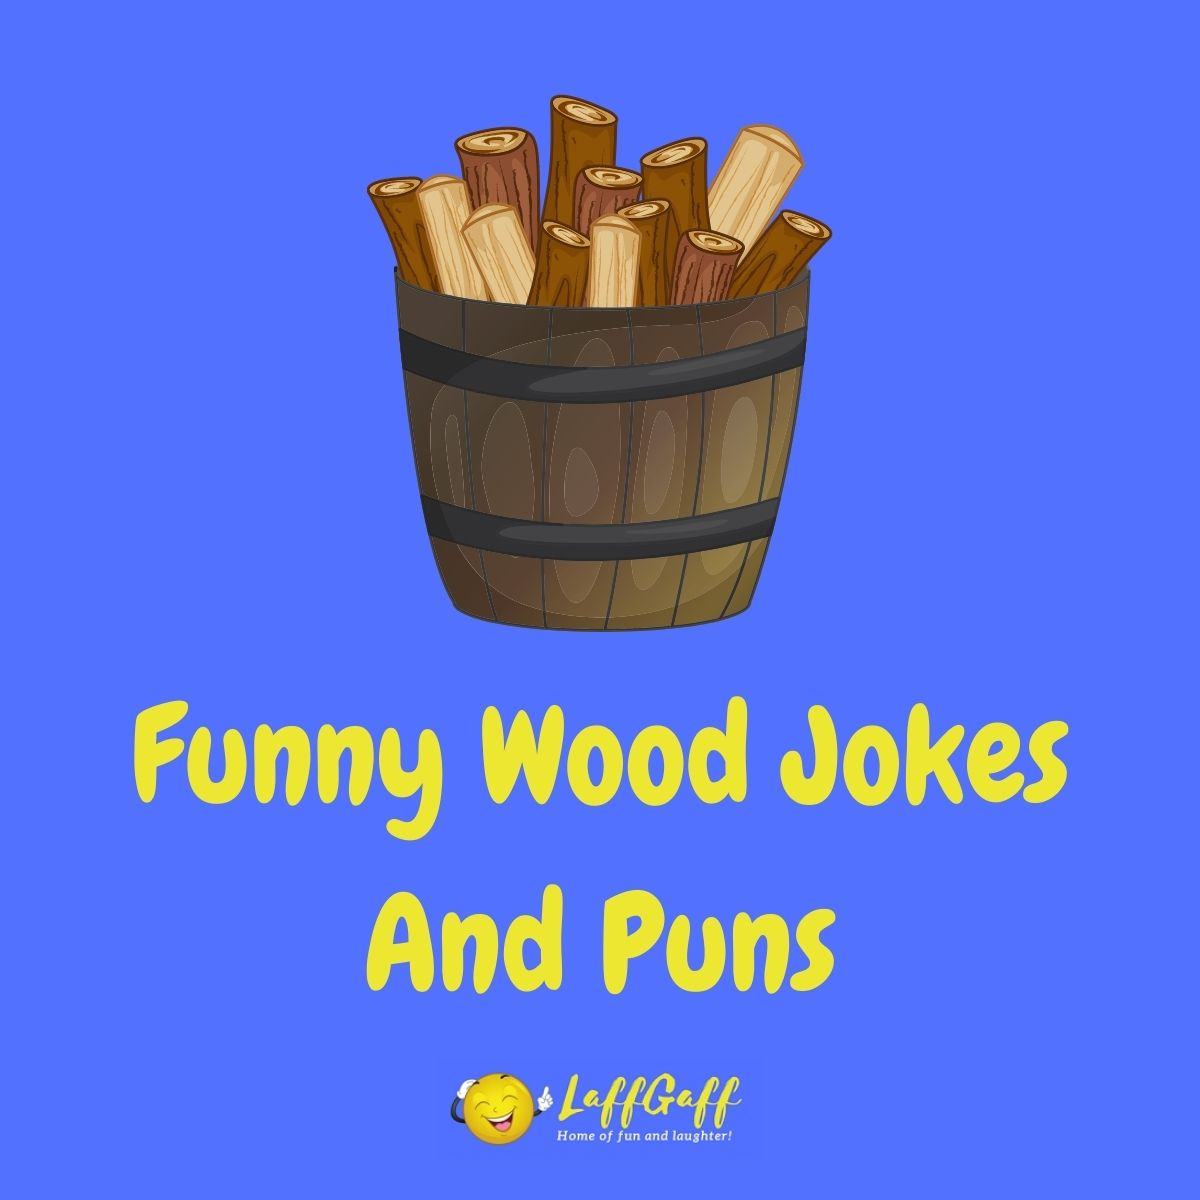 Featured image for a page of funny wood jokes and puns.